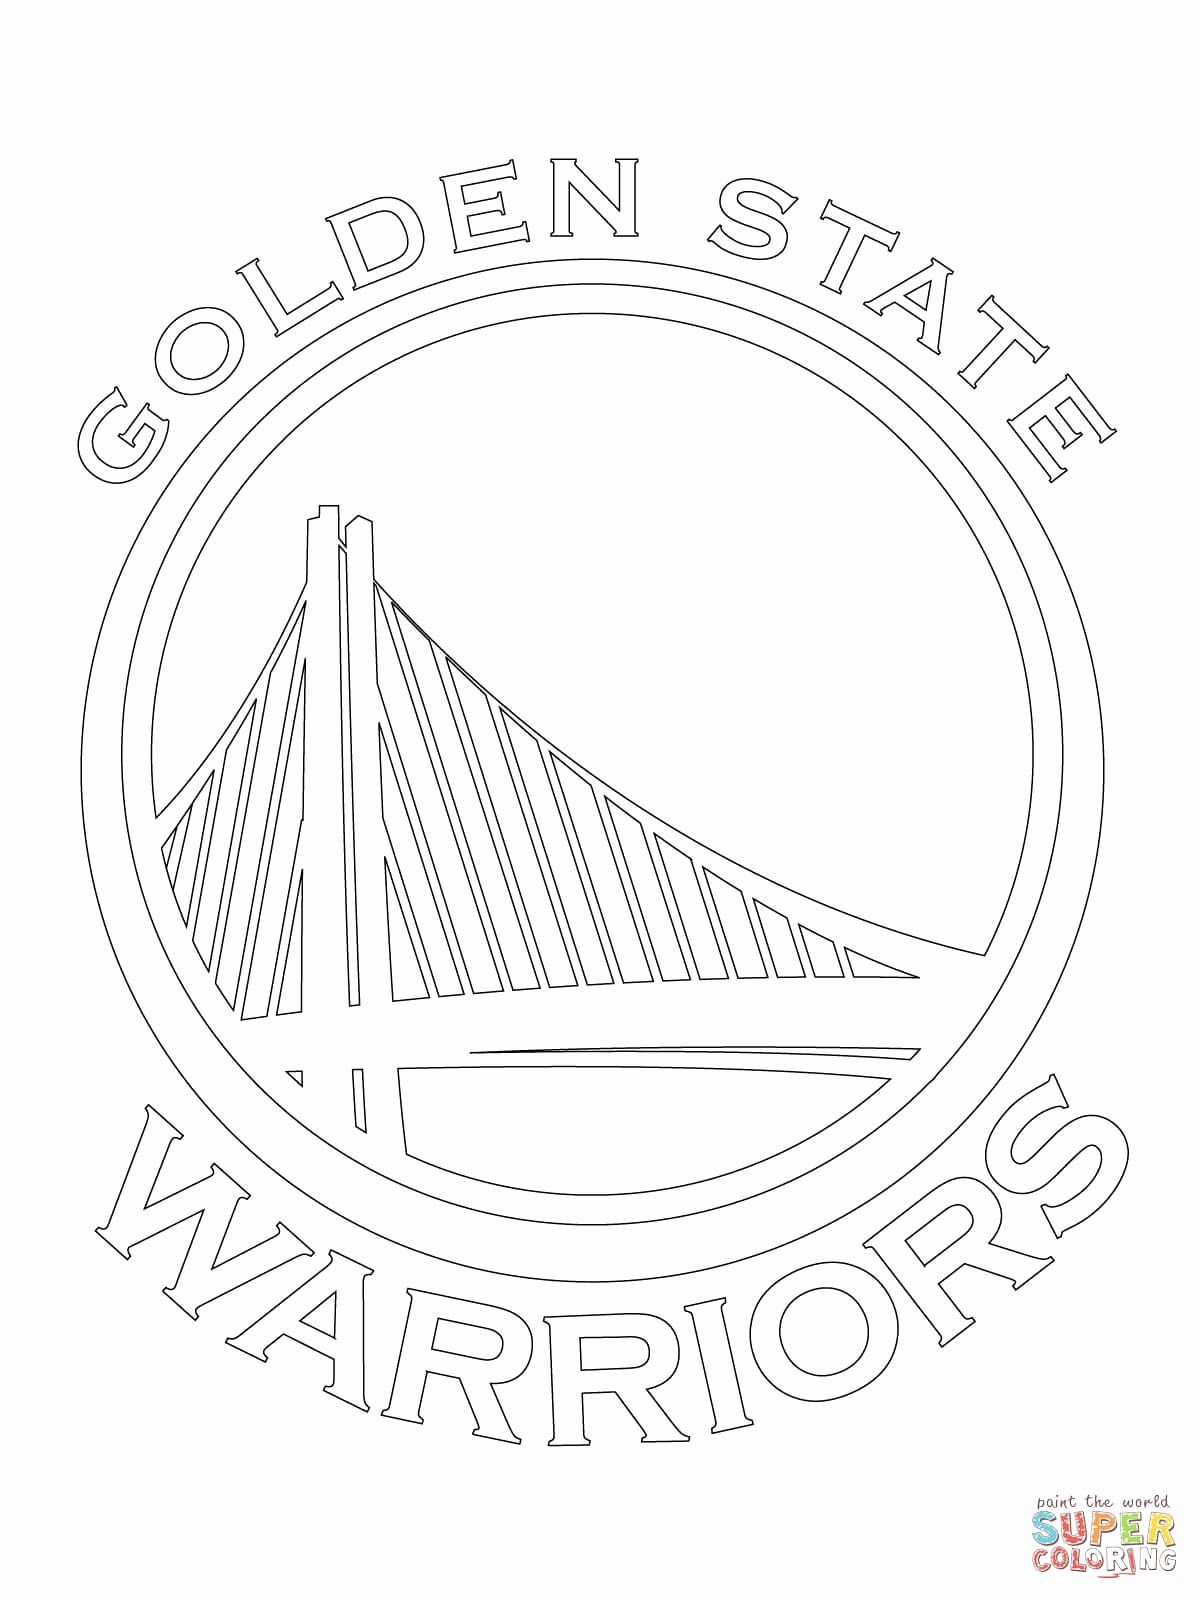 Kansas State Flag Coloring Page Awesome Elegant Golden State